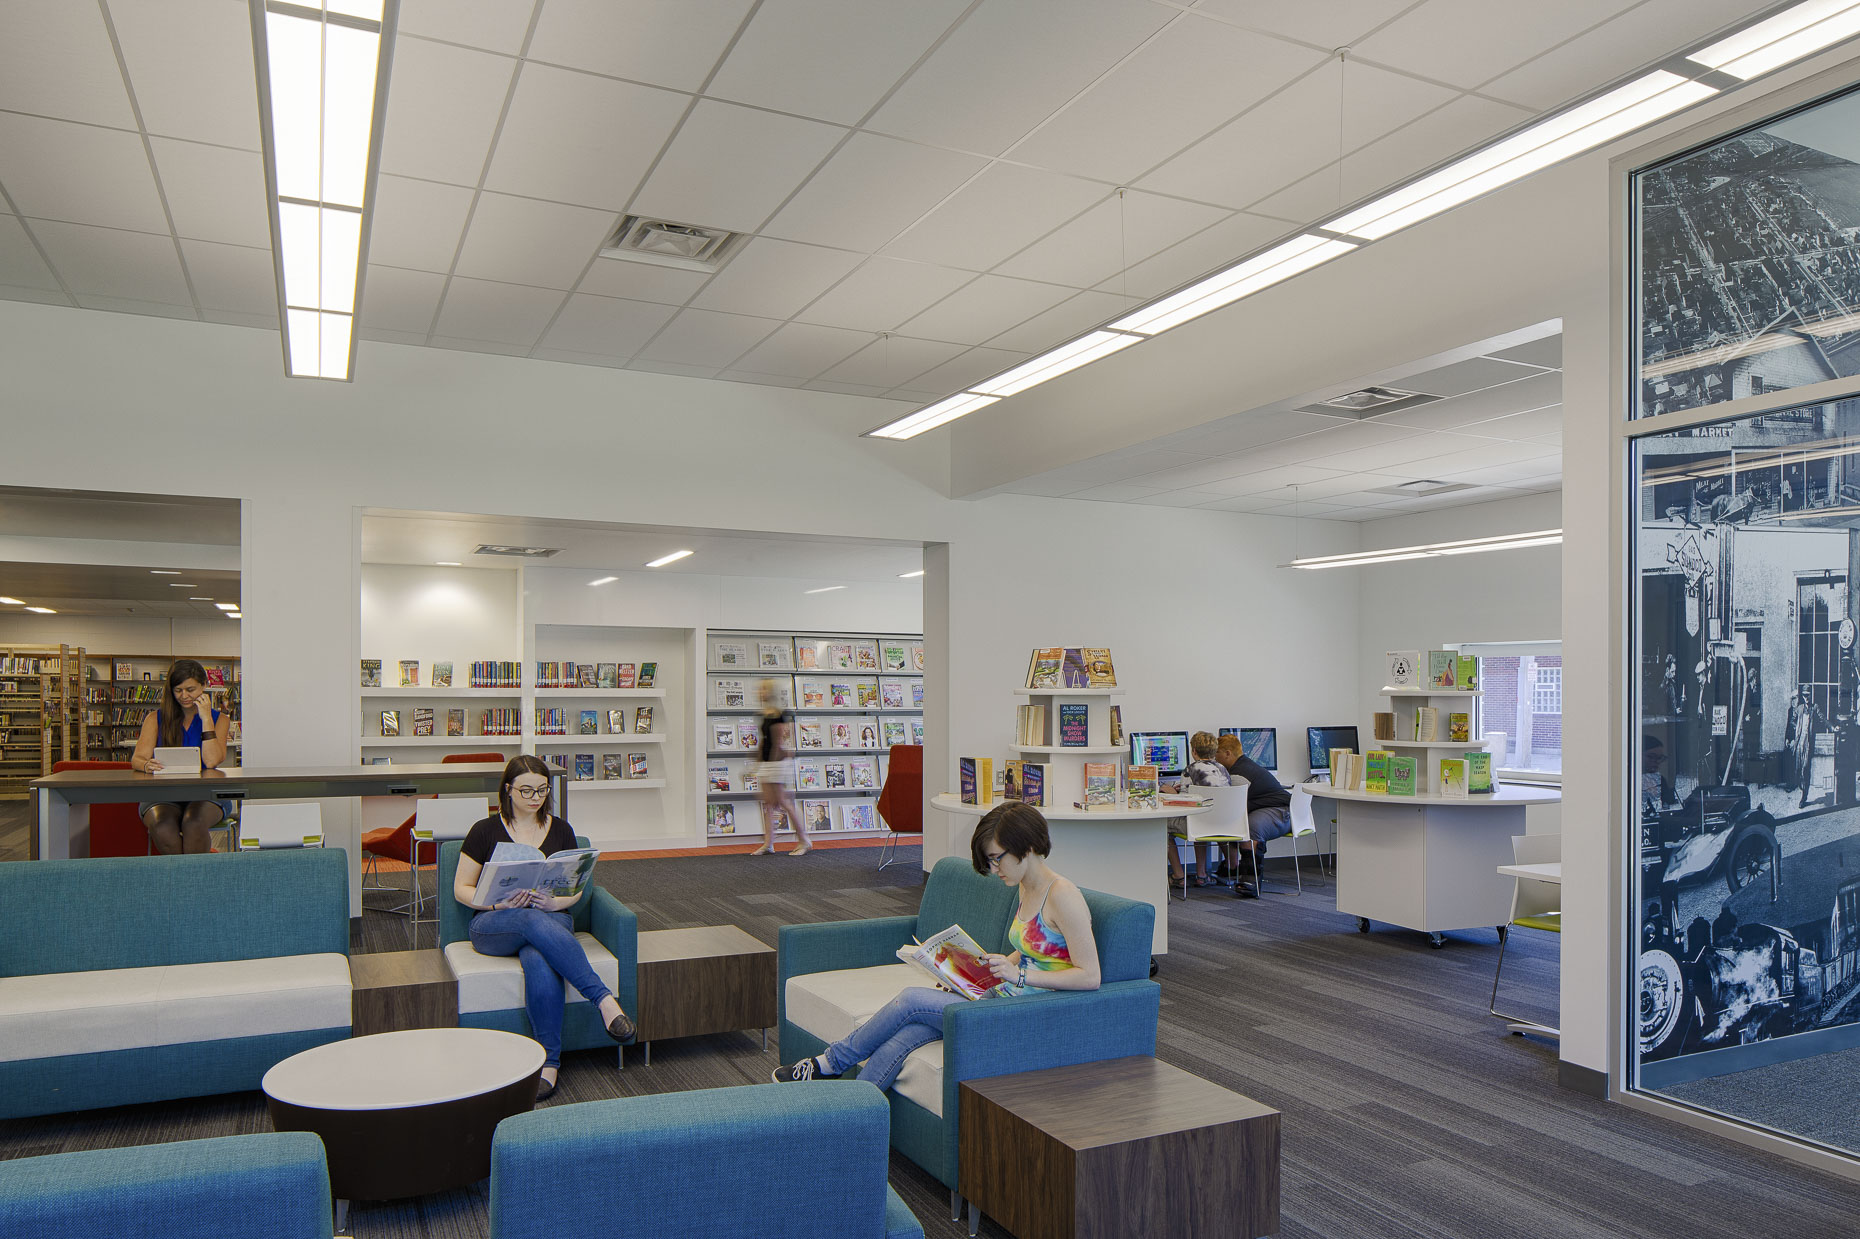 Wood County District Library Walbridge Branch by DesignGroup photographed by Lauren K Davis based in Columbus, Ohio